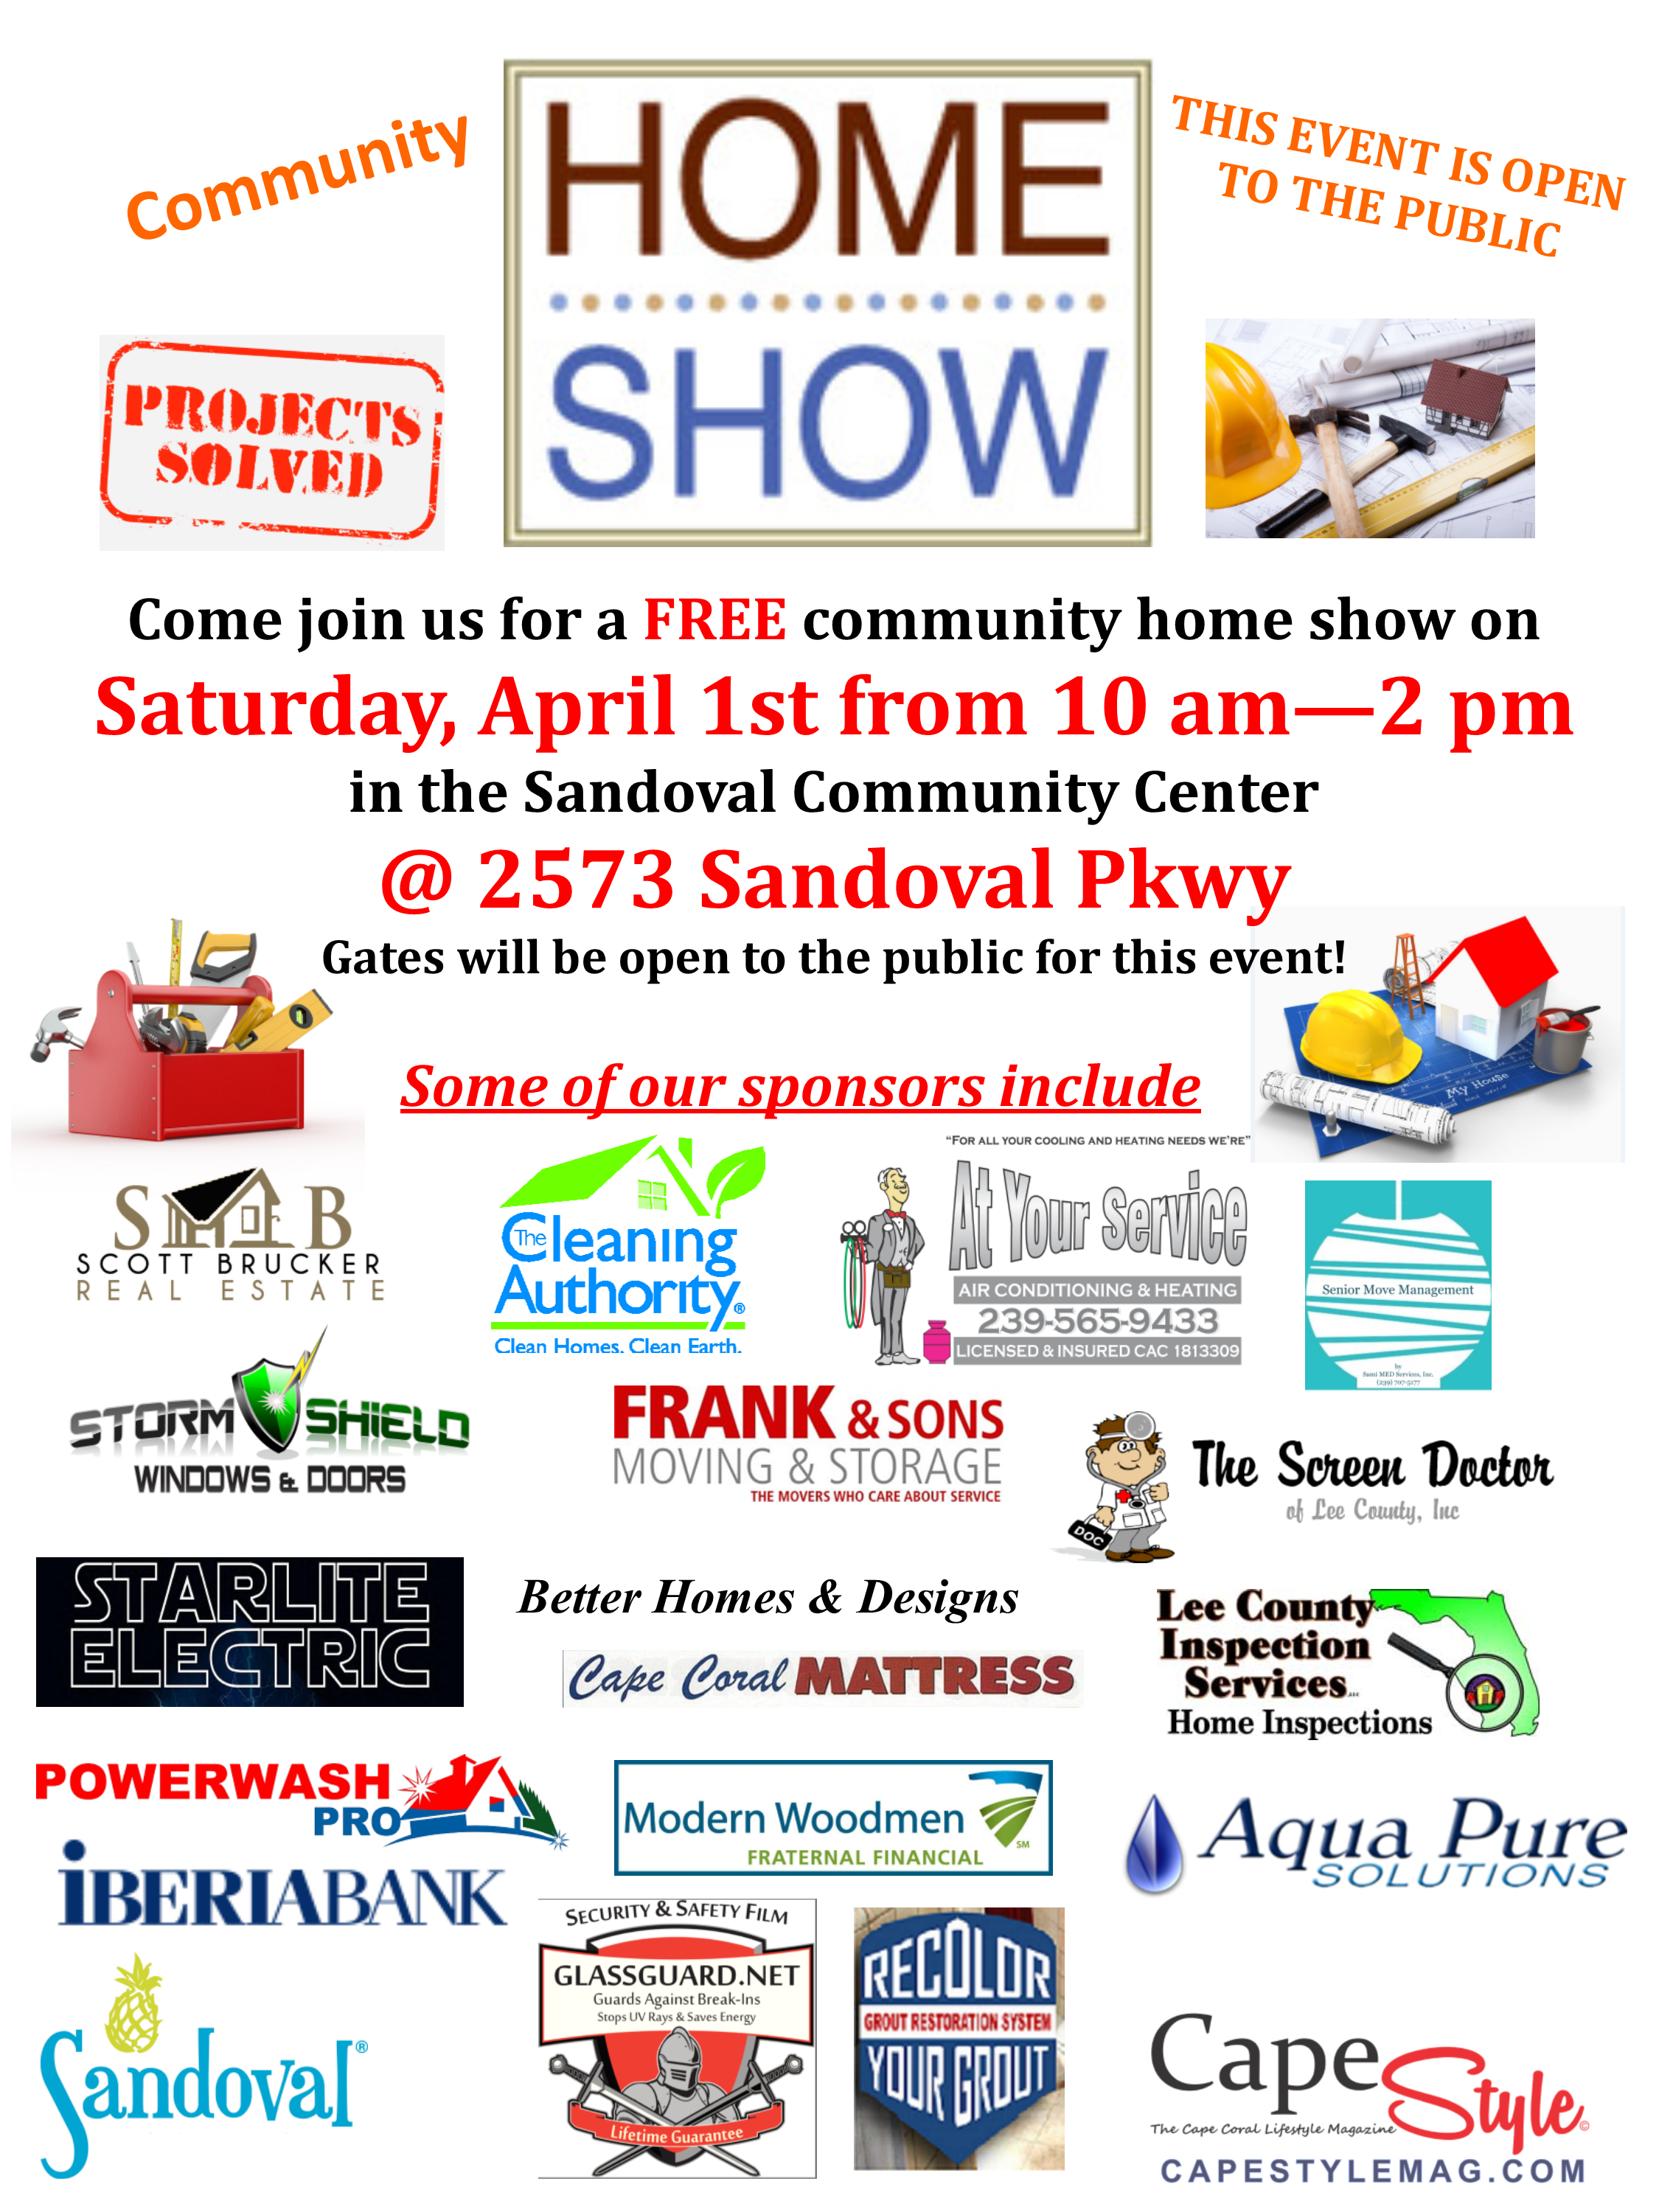 home show flyer 2017 with sponsor logos capestyle magazine online